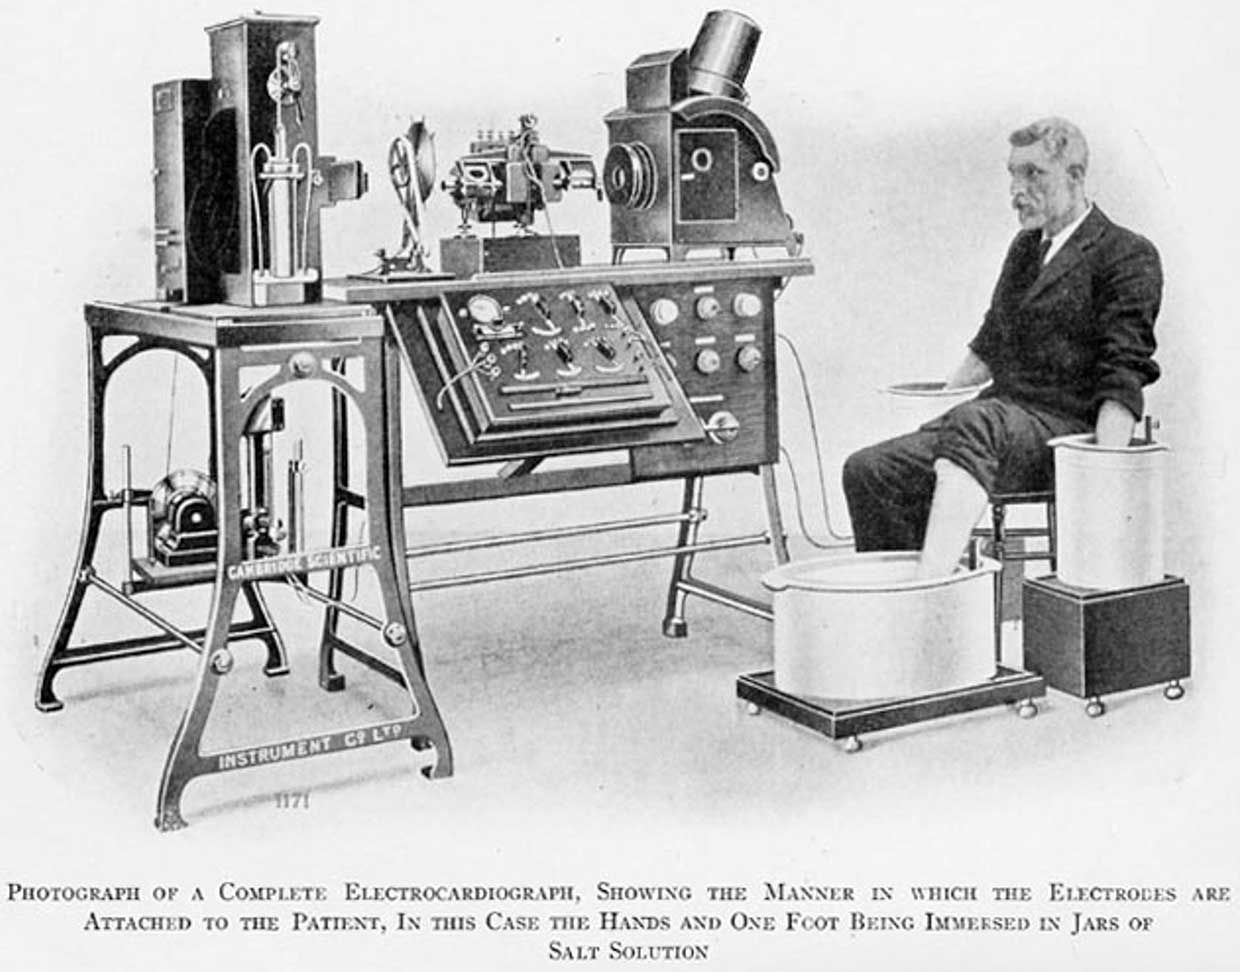 Willem Einthoven's string galvanometer was sensitive enough to measure the tiny but regular voltage fluctuations in a single heartbeat.